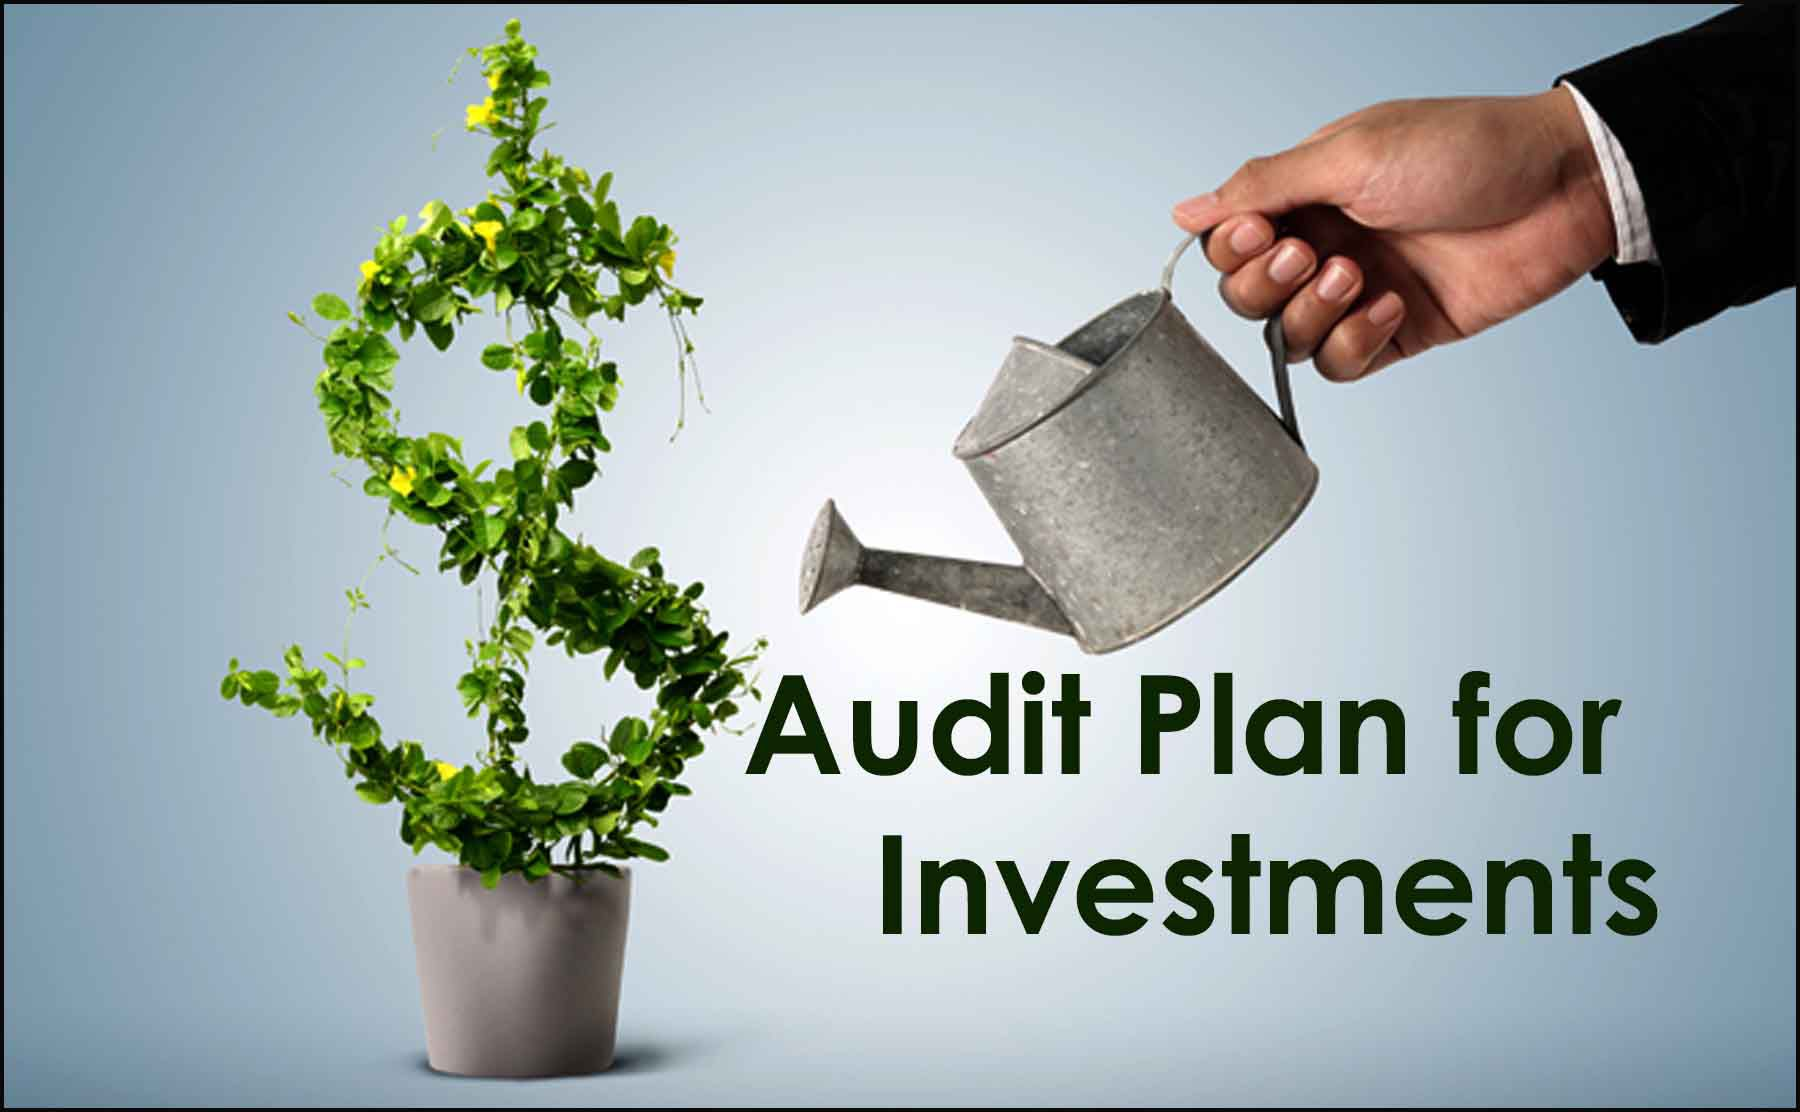 How to Audit Investments